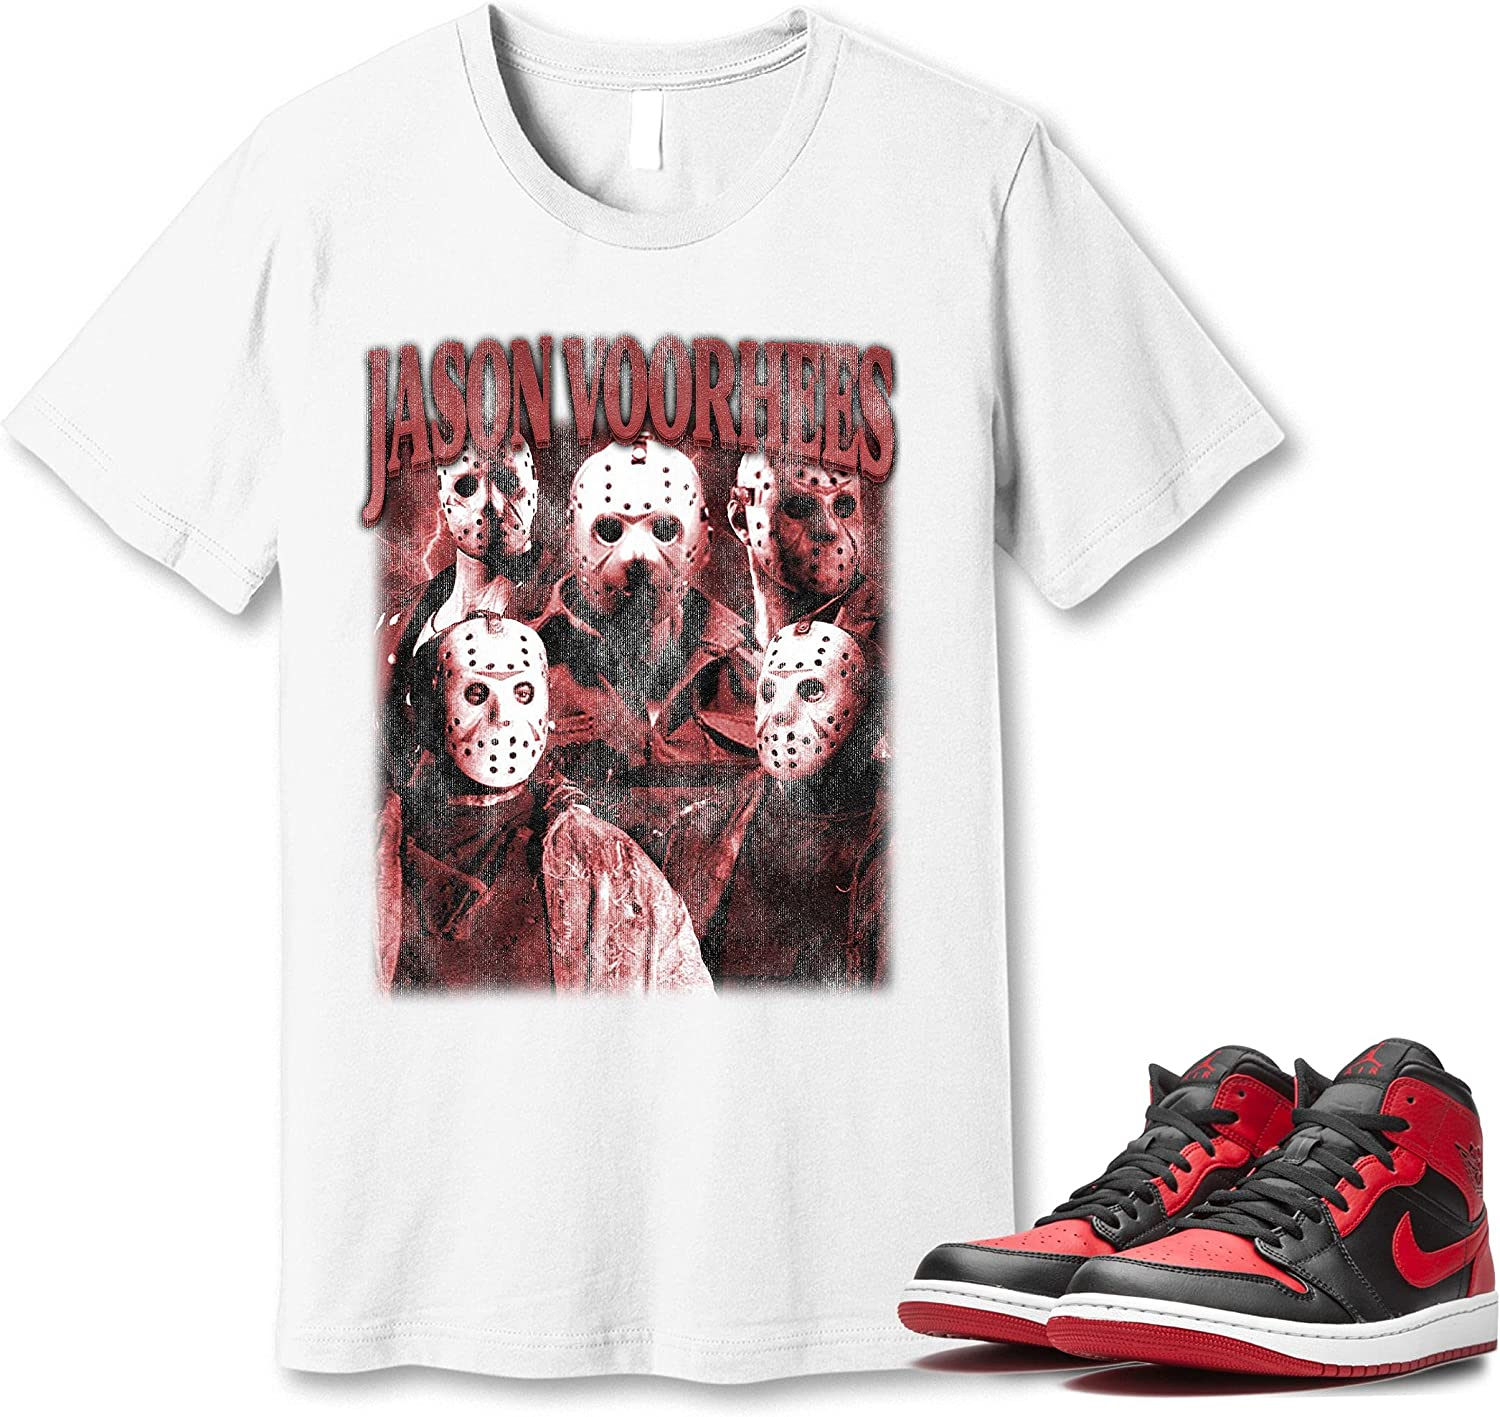 #Jason #Voorhees T-Shirt to Match Fashionable Sneaker Banned OFFicial mail order Snkrs 1 Jordan